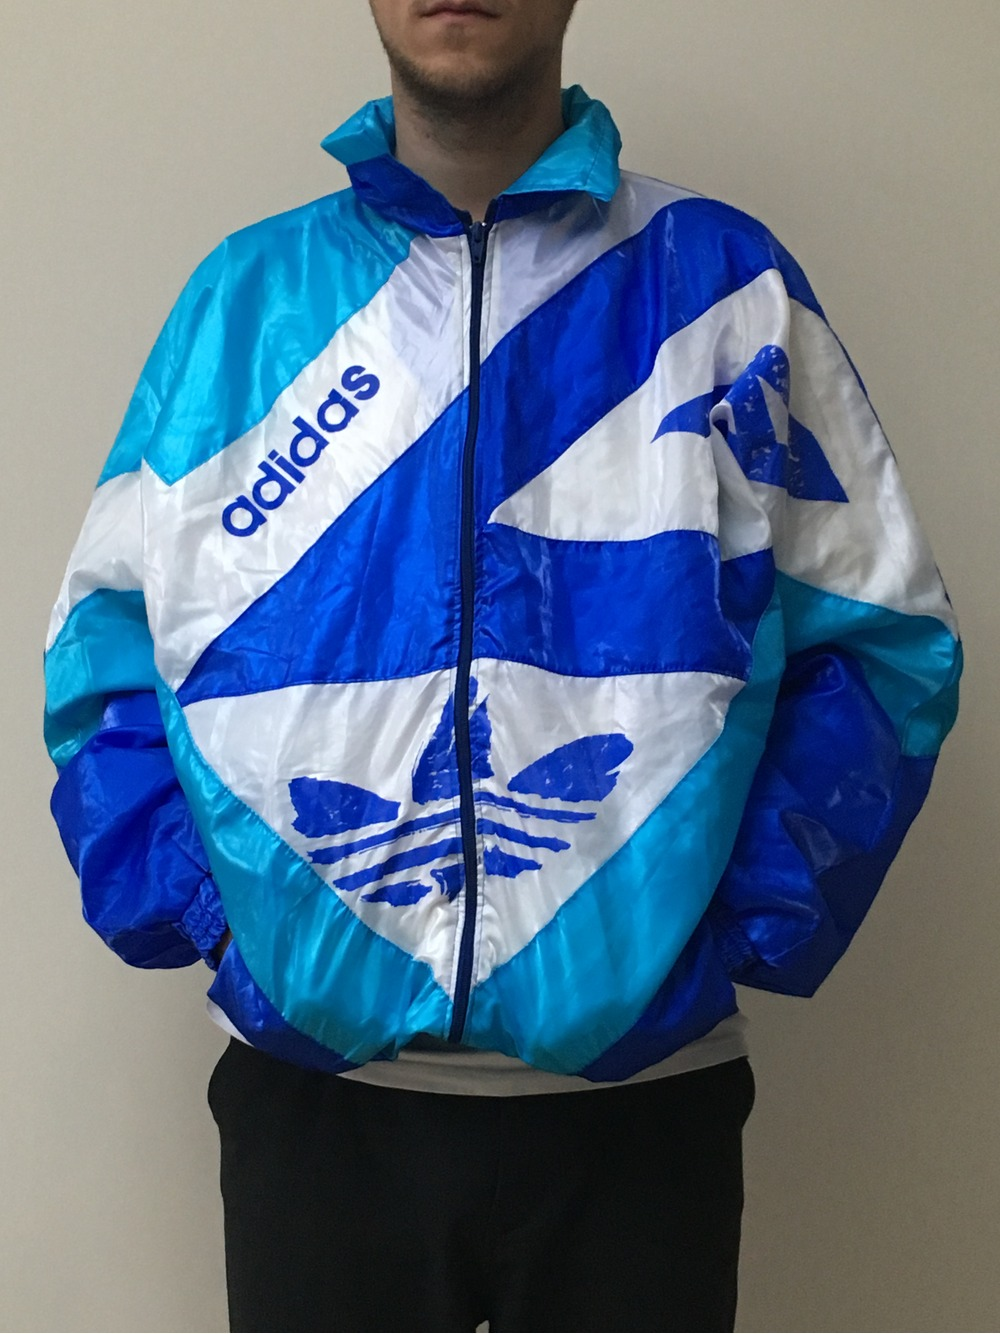 Adidas Vintage Windbreaker Bomber Jacket U0026quot;Made In W.Germanyu0026quot; (#438848) From Martin At KLEKT